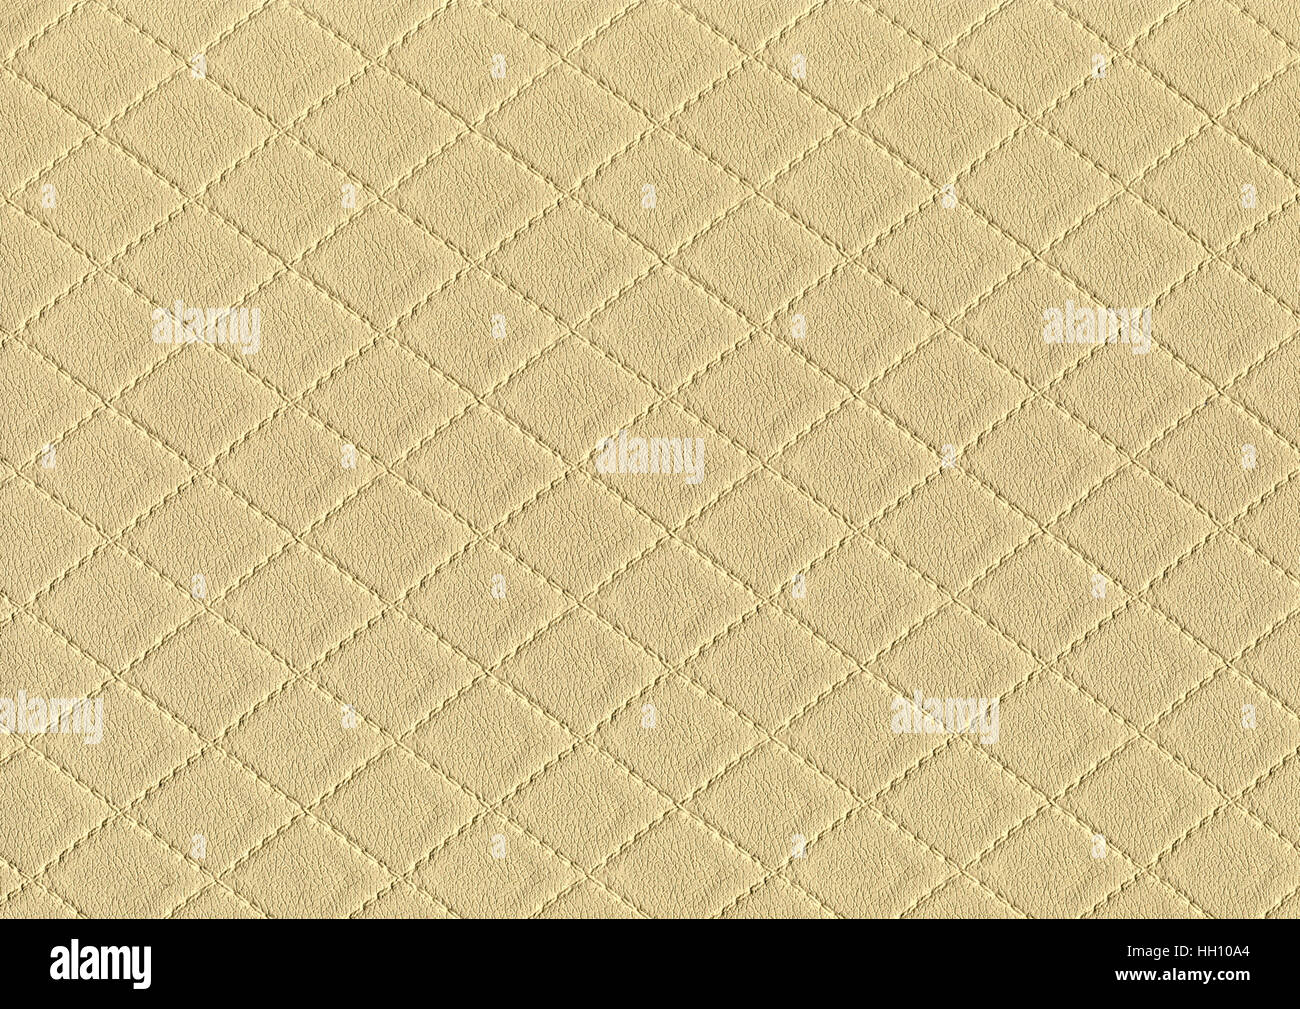 a full frame abstract stitched fawn leather background - Stock Image